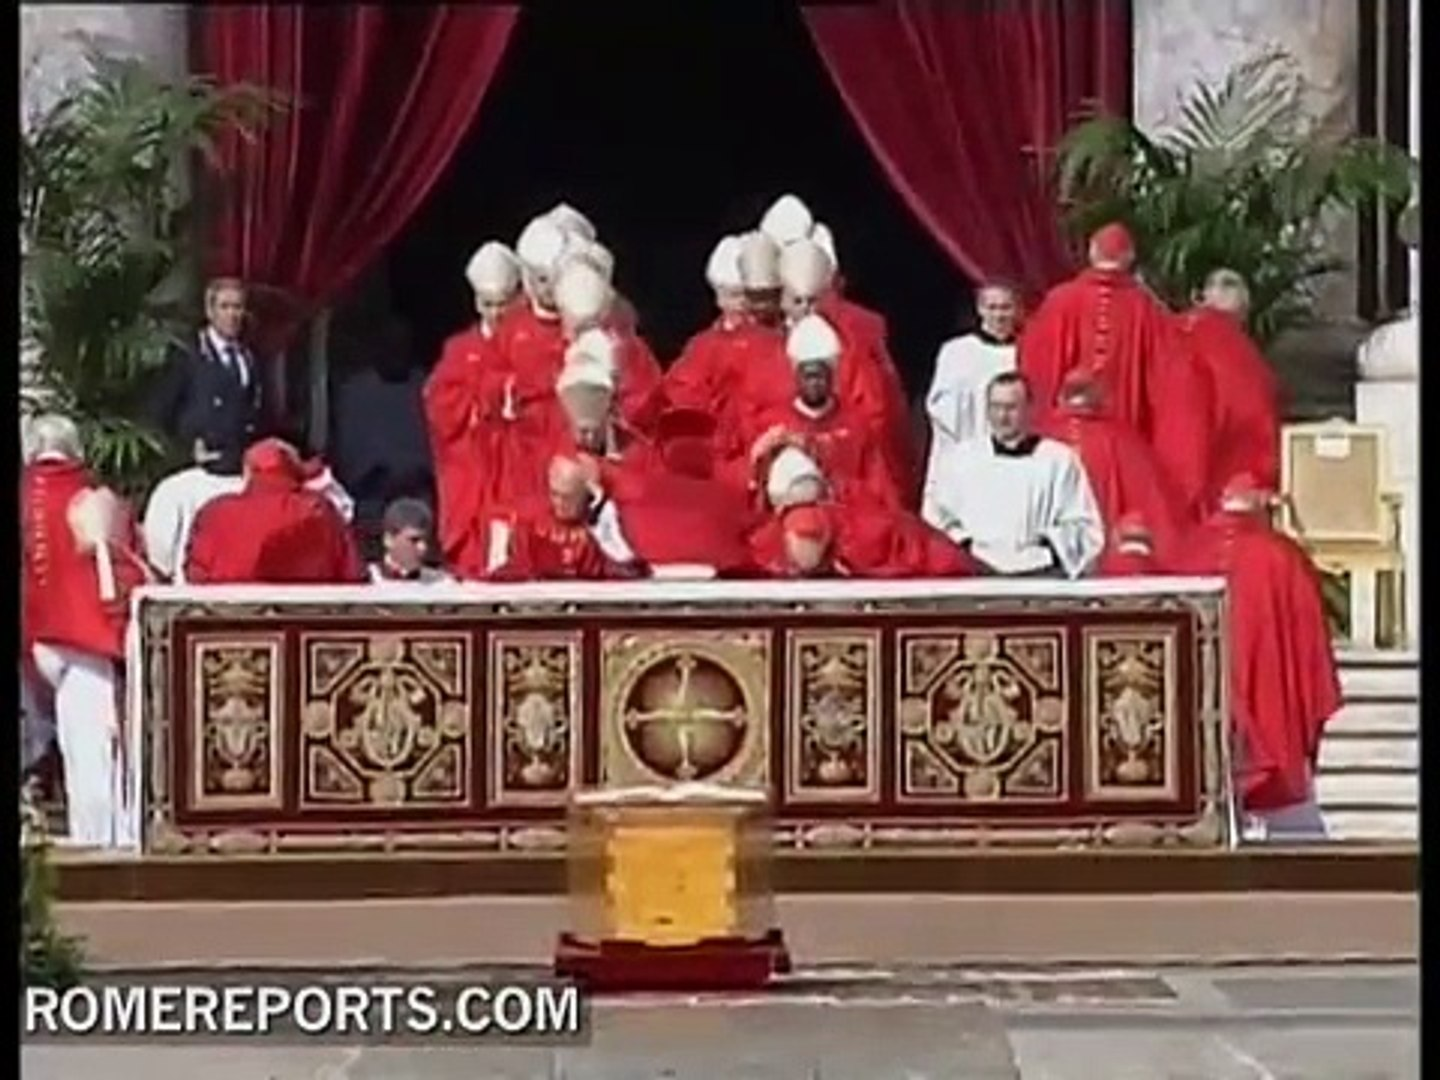 Vatican plans to show coffin of John Paul II for few hours after beatification ceremony